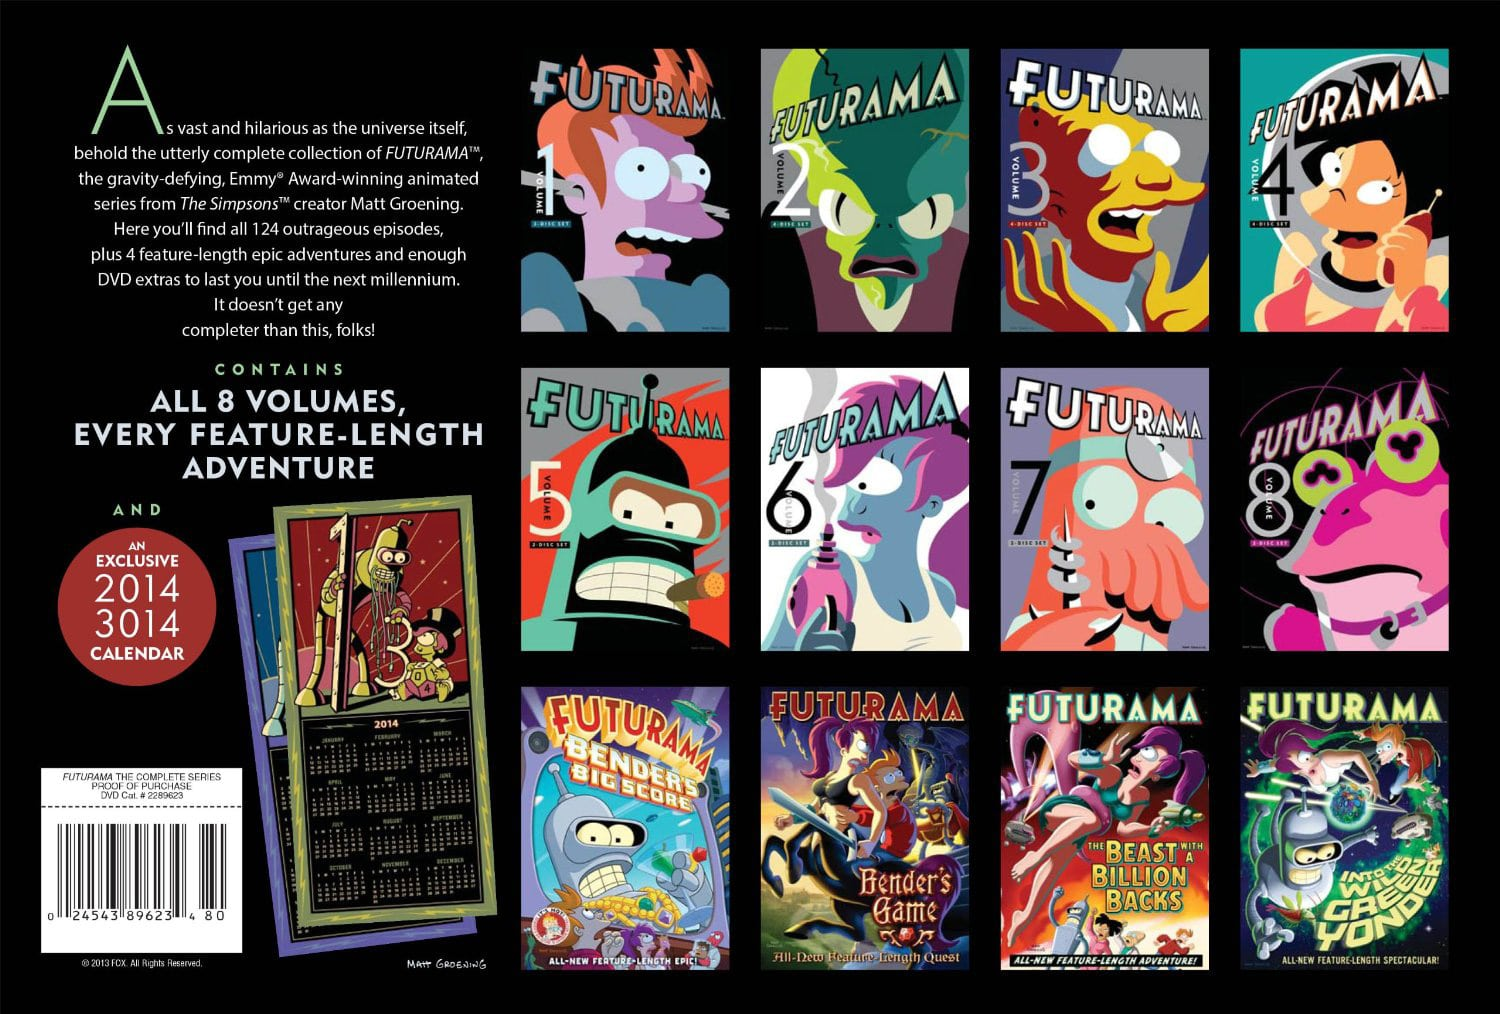 Futurama Complete Series Description